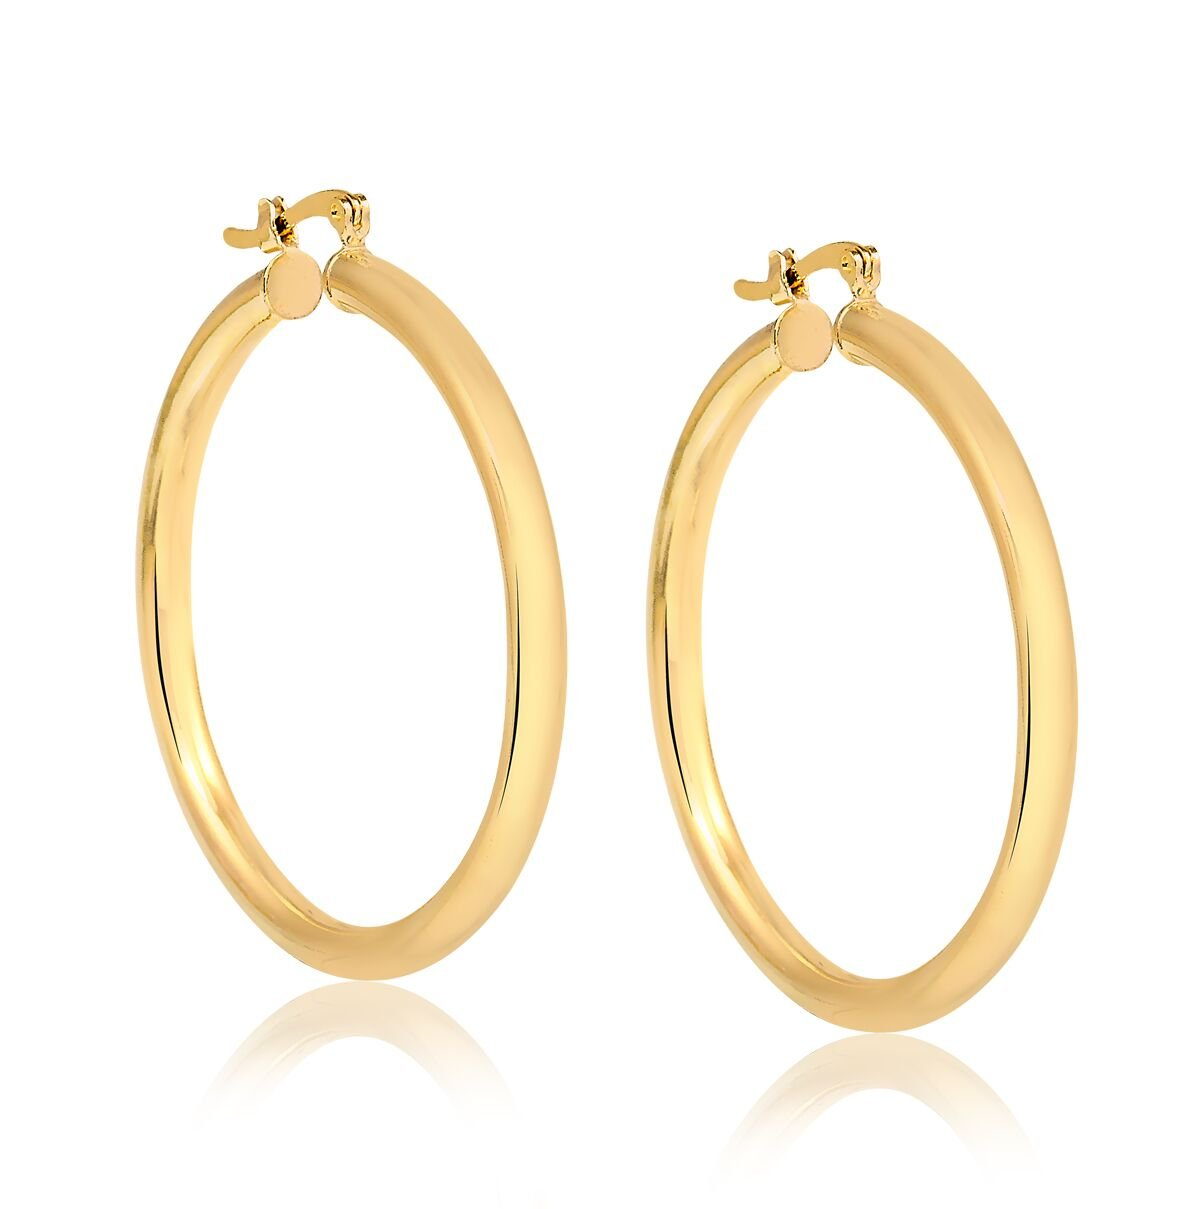 10K Solid Gold 3X30MM thick Round Hoop Earrings- French Lock Closure